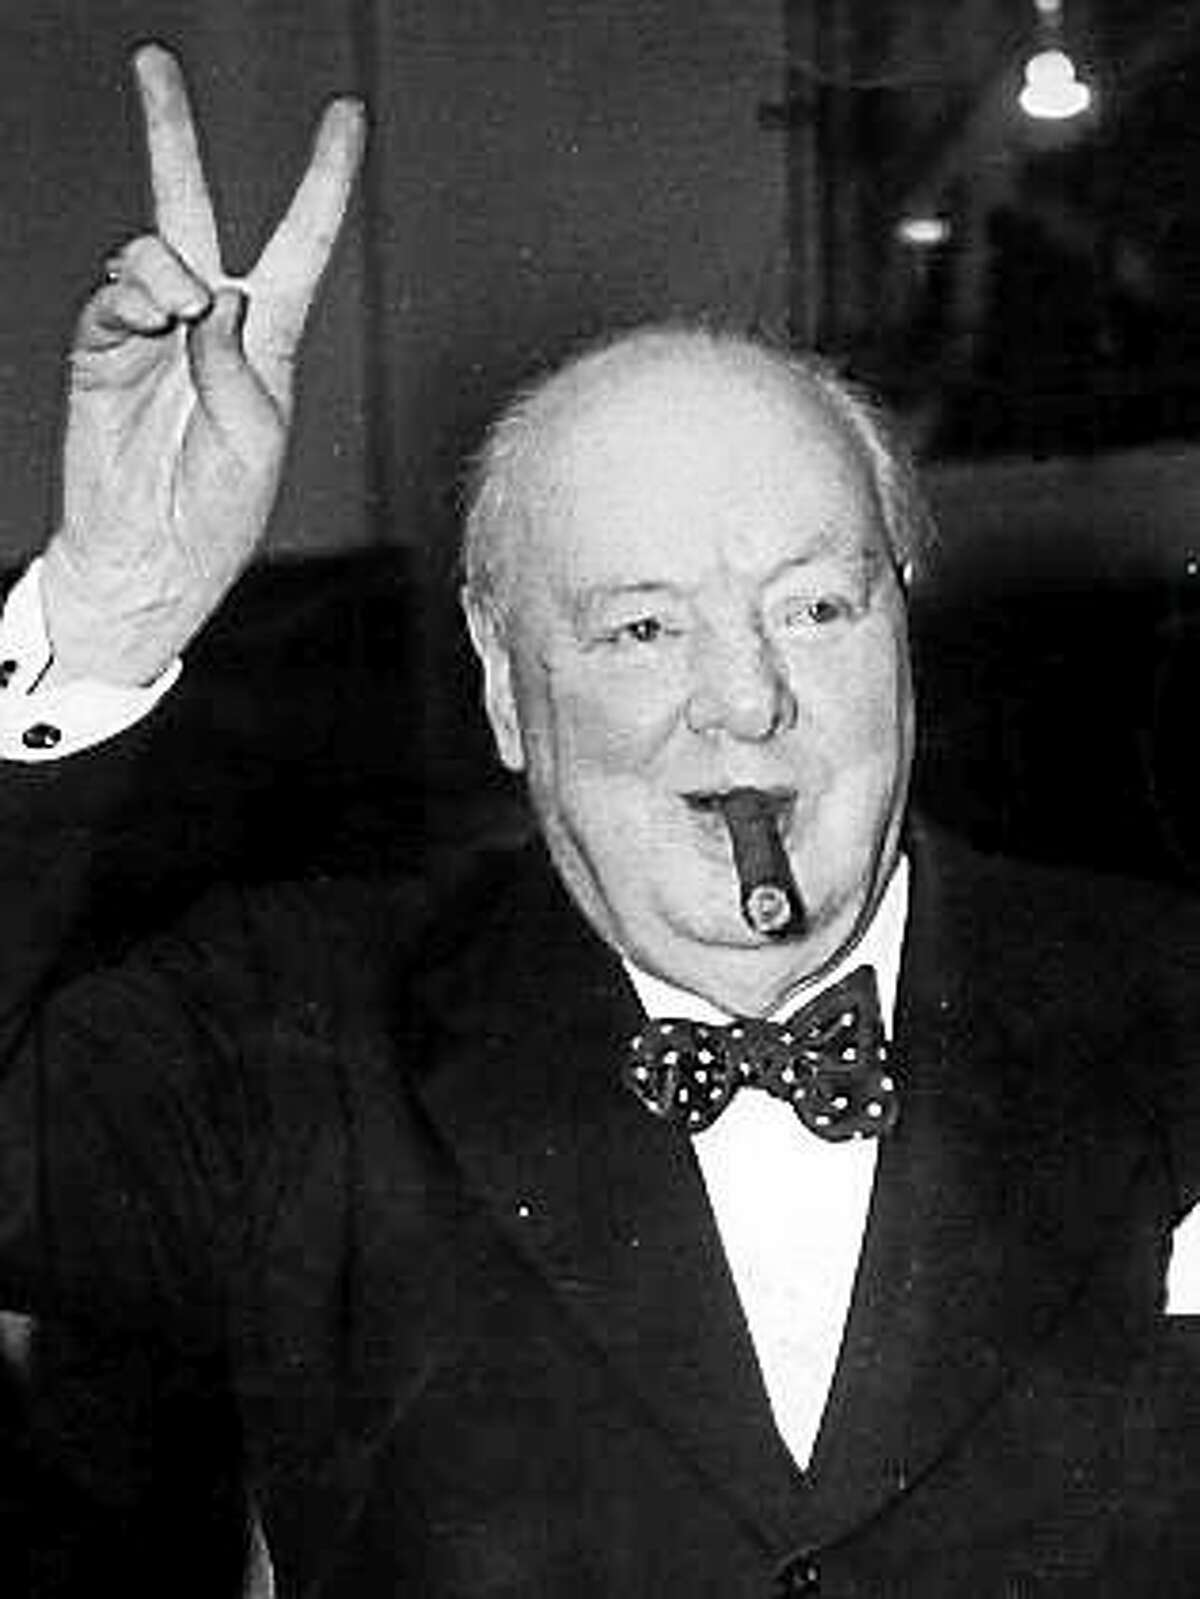 Winston Churchill flashing his famour victory sign and smoking his iconic cigar.